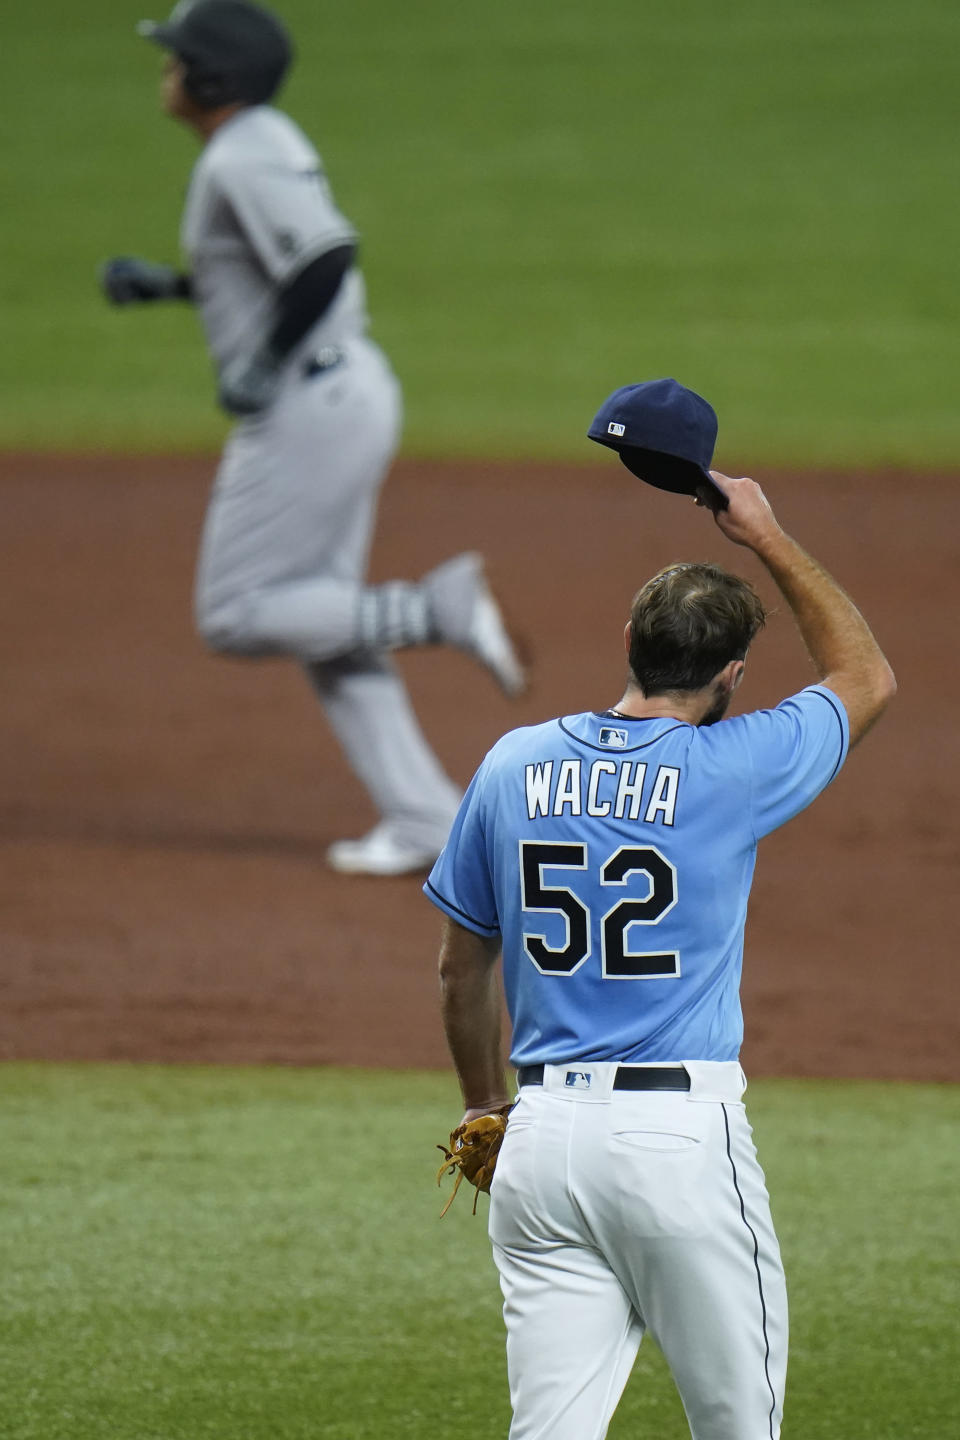 Tampa Bay Rays starting pitcher Michael Wacha (52) reacts as New York Yankees' Gio Urshela runs around the bases after his two-run home run during the third inning of a baseball game Sunday, April 11, 2021, in St. Petersburg, Fla. (AP Photo/Chris O'Meara)